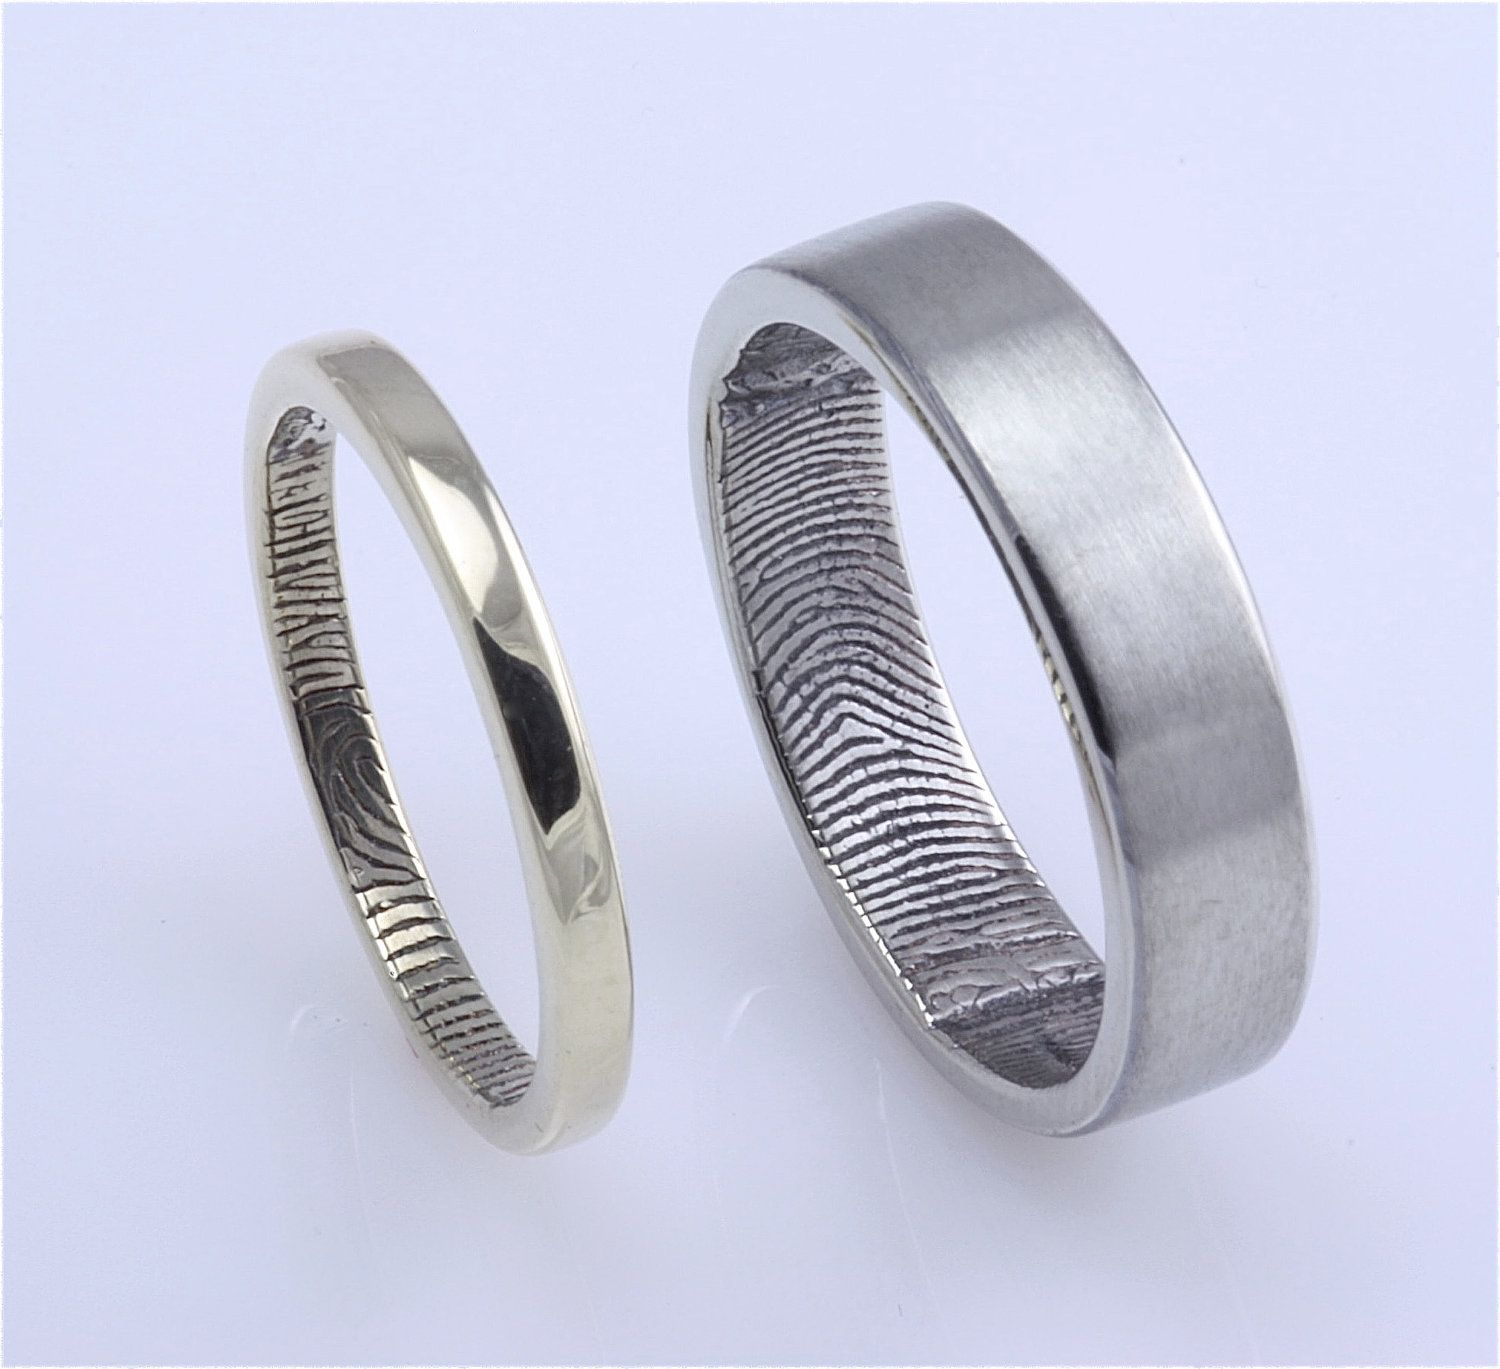 great engraved fingerprint weddings choice your shape ring custom rose set rings itm any they and wedding of for titanium occasion flat becoming customized the with gold fast are couple jewelry from